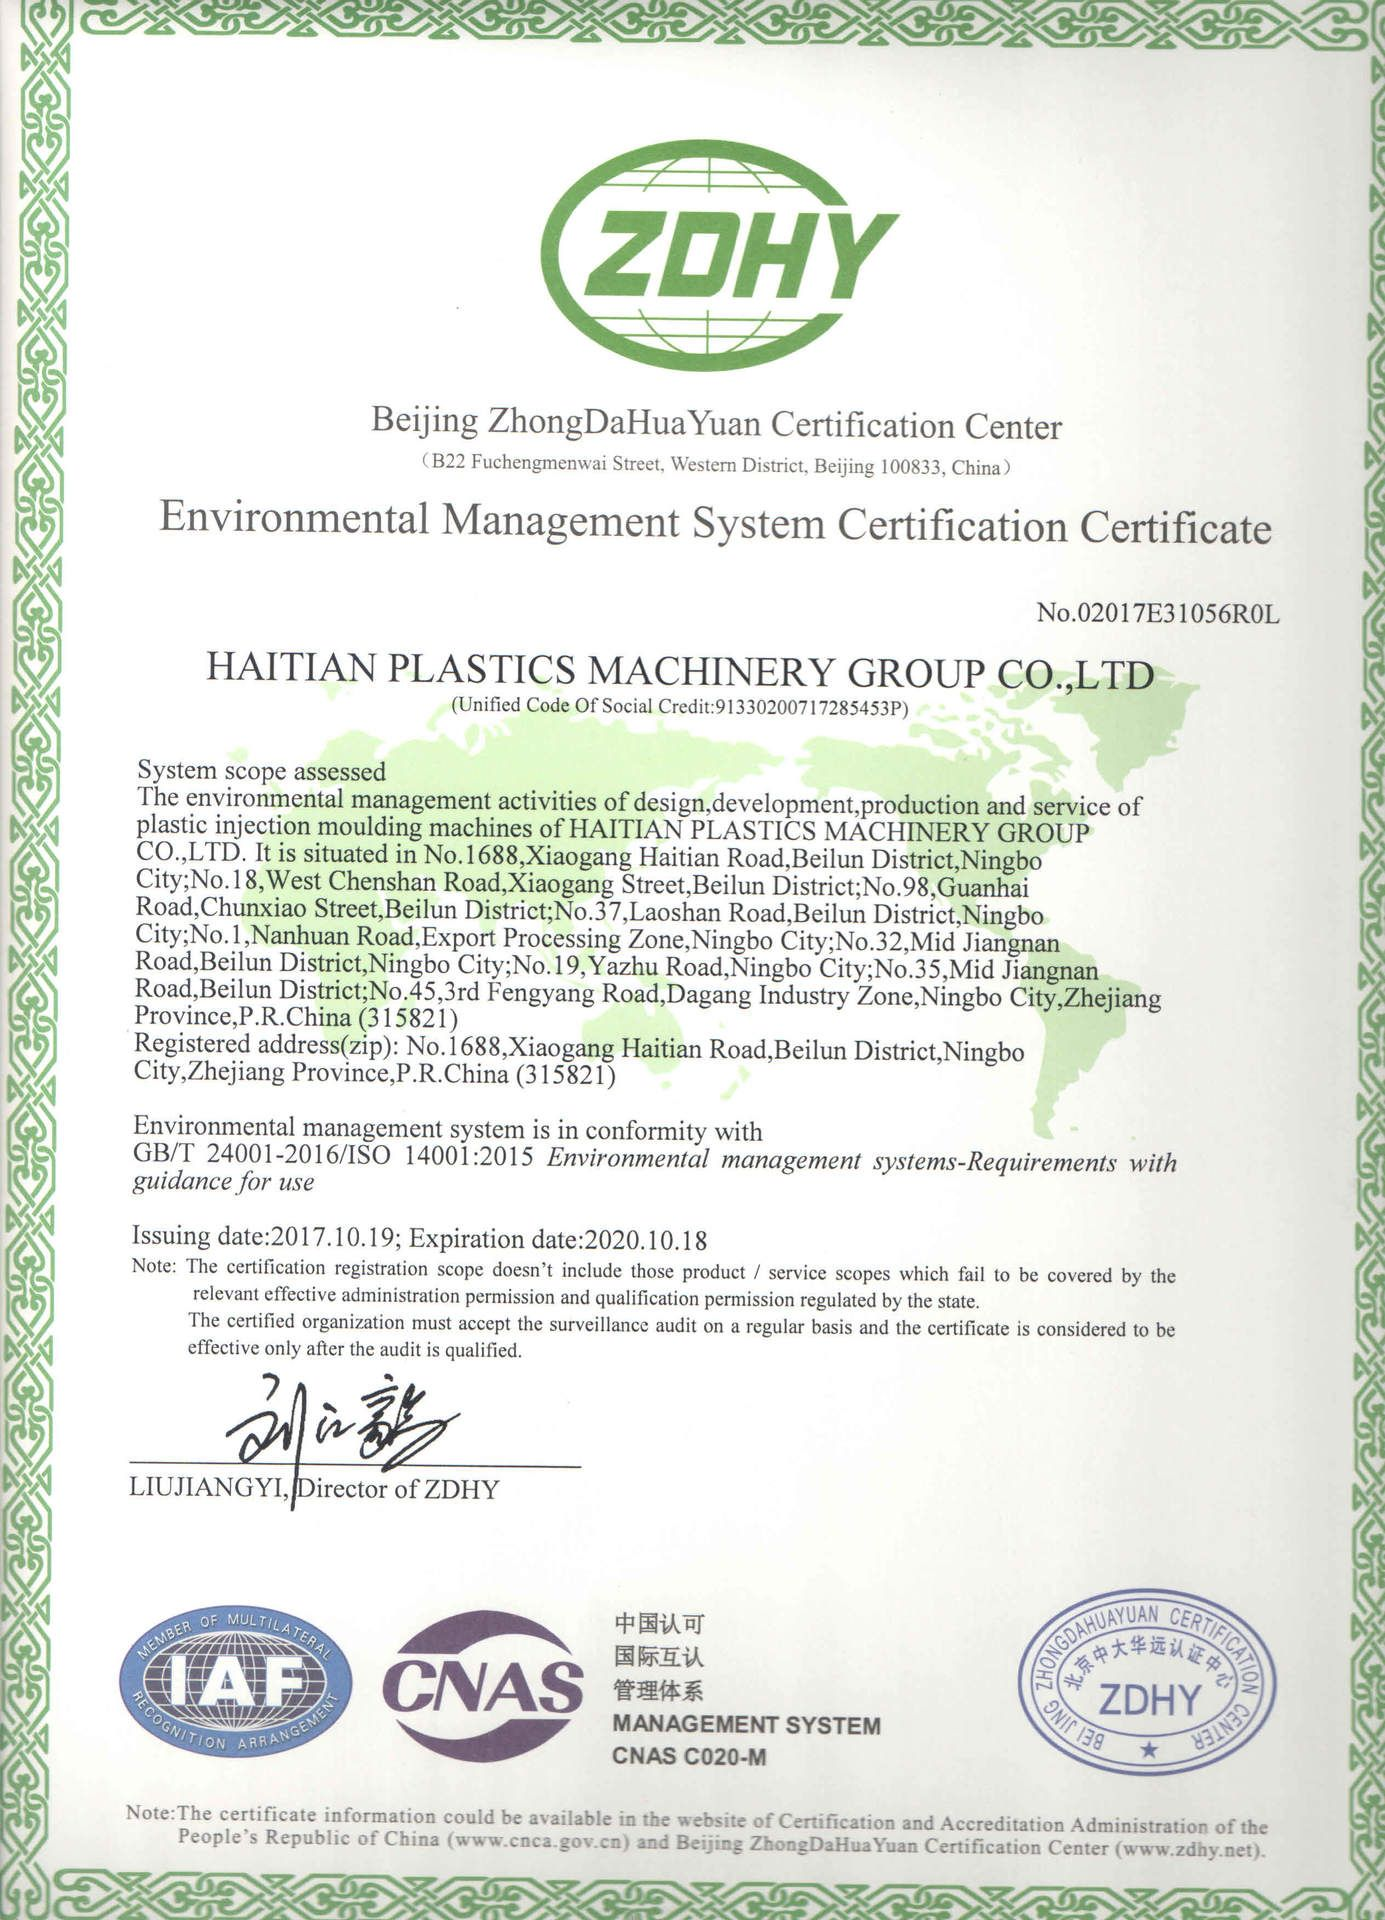 haitian-group-iso14001-certification